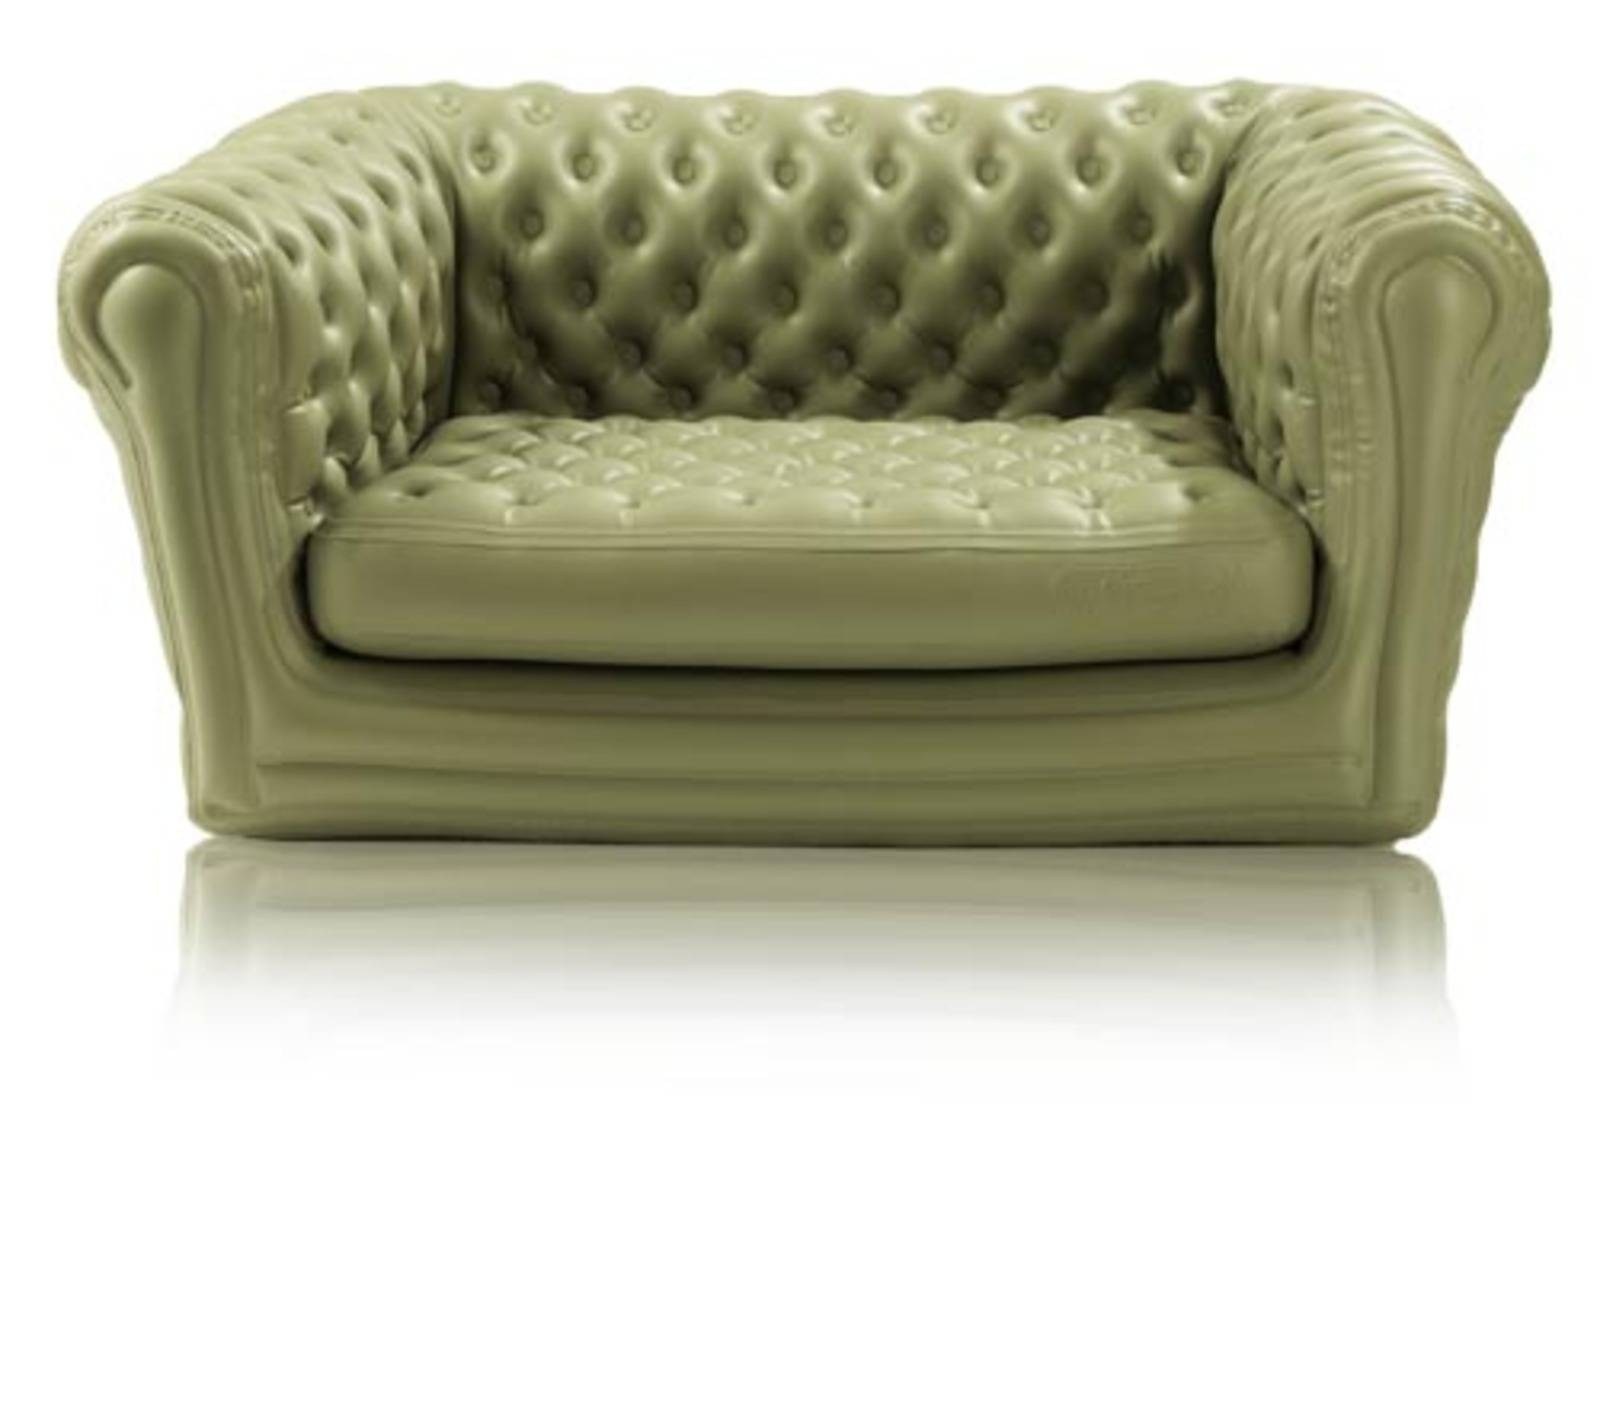 Blofield Inflatable Chesterfield Furniture - Cool Hunting in Inflatable Sofas And Chairs (Image 3 of 15)